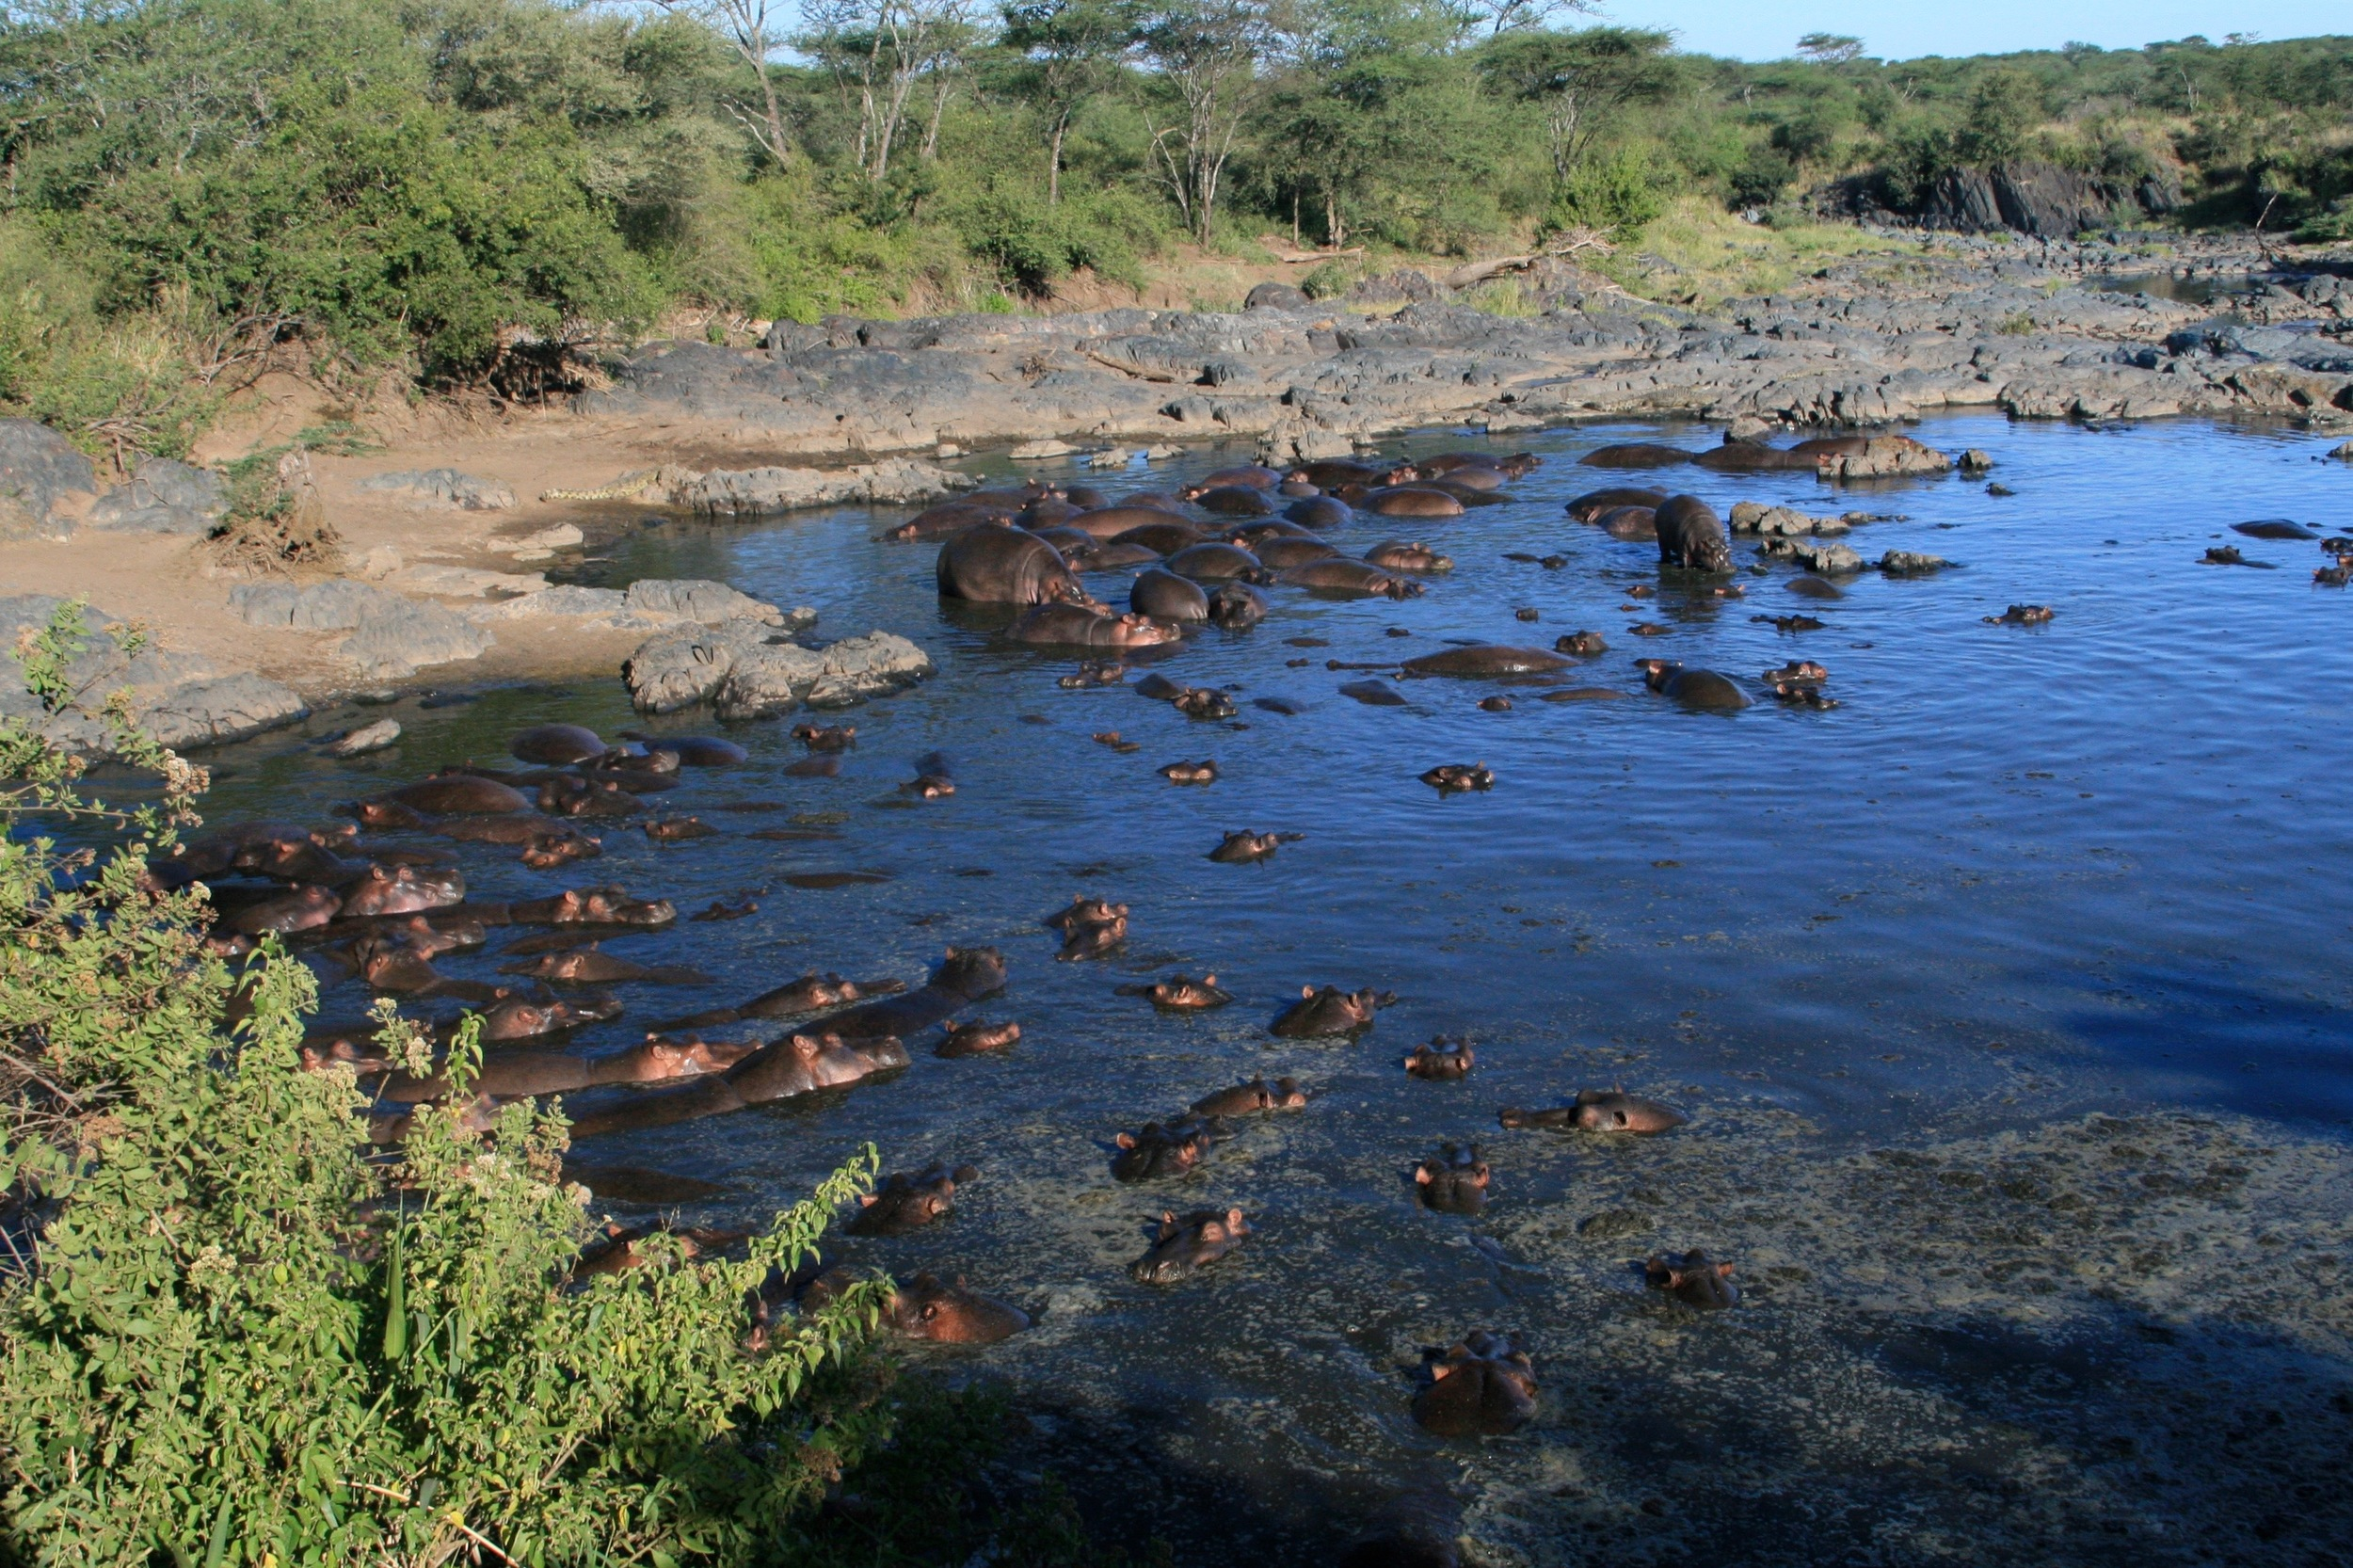 Wild hippos in East Africa